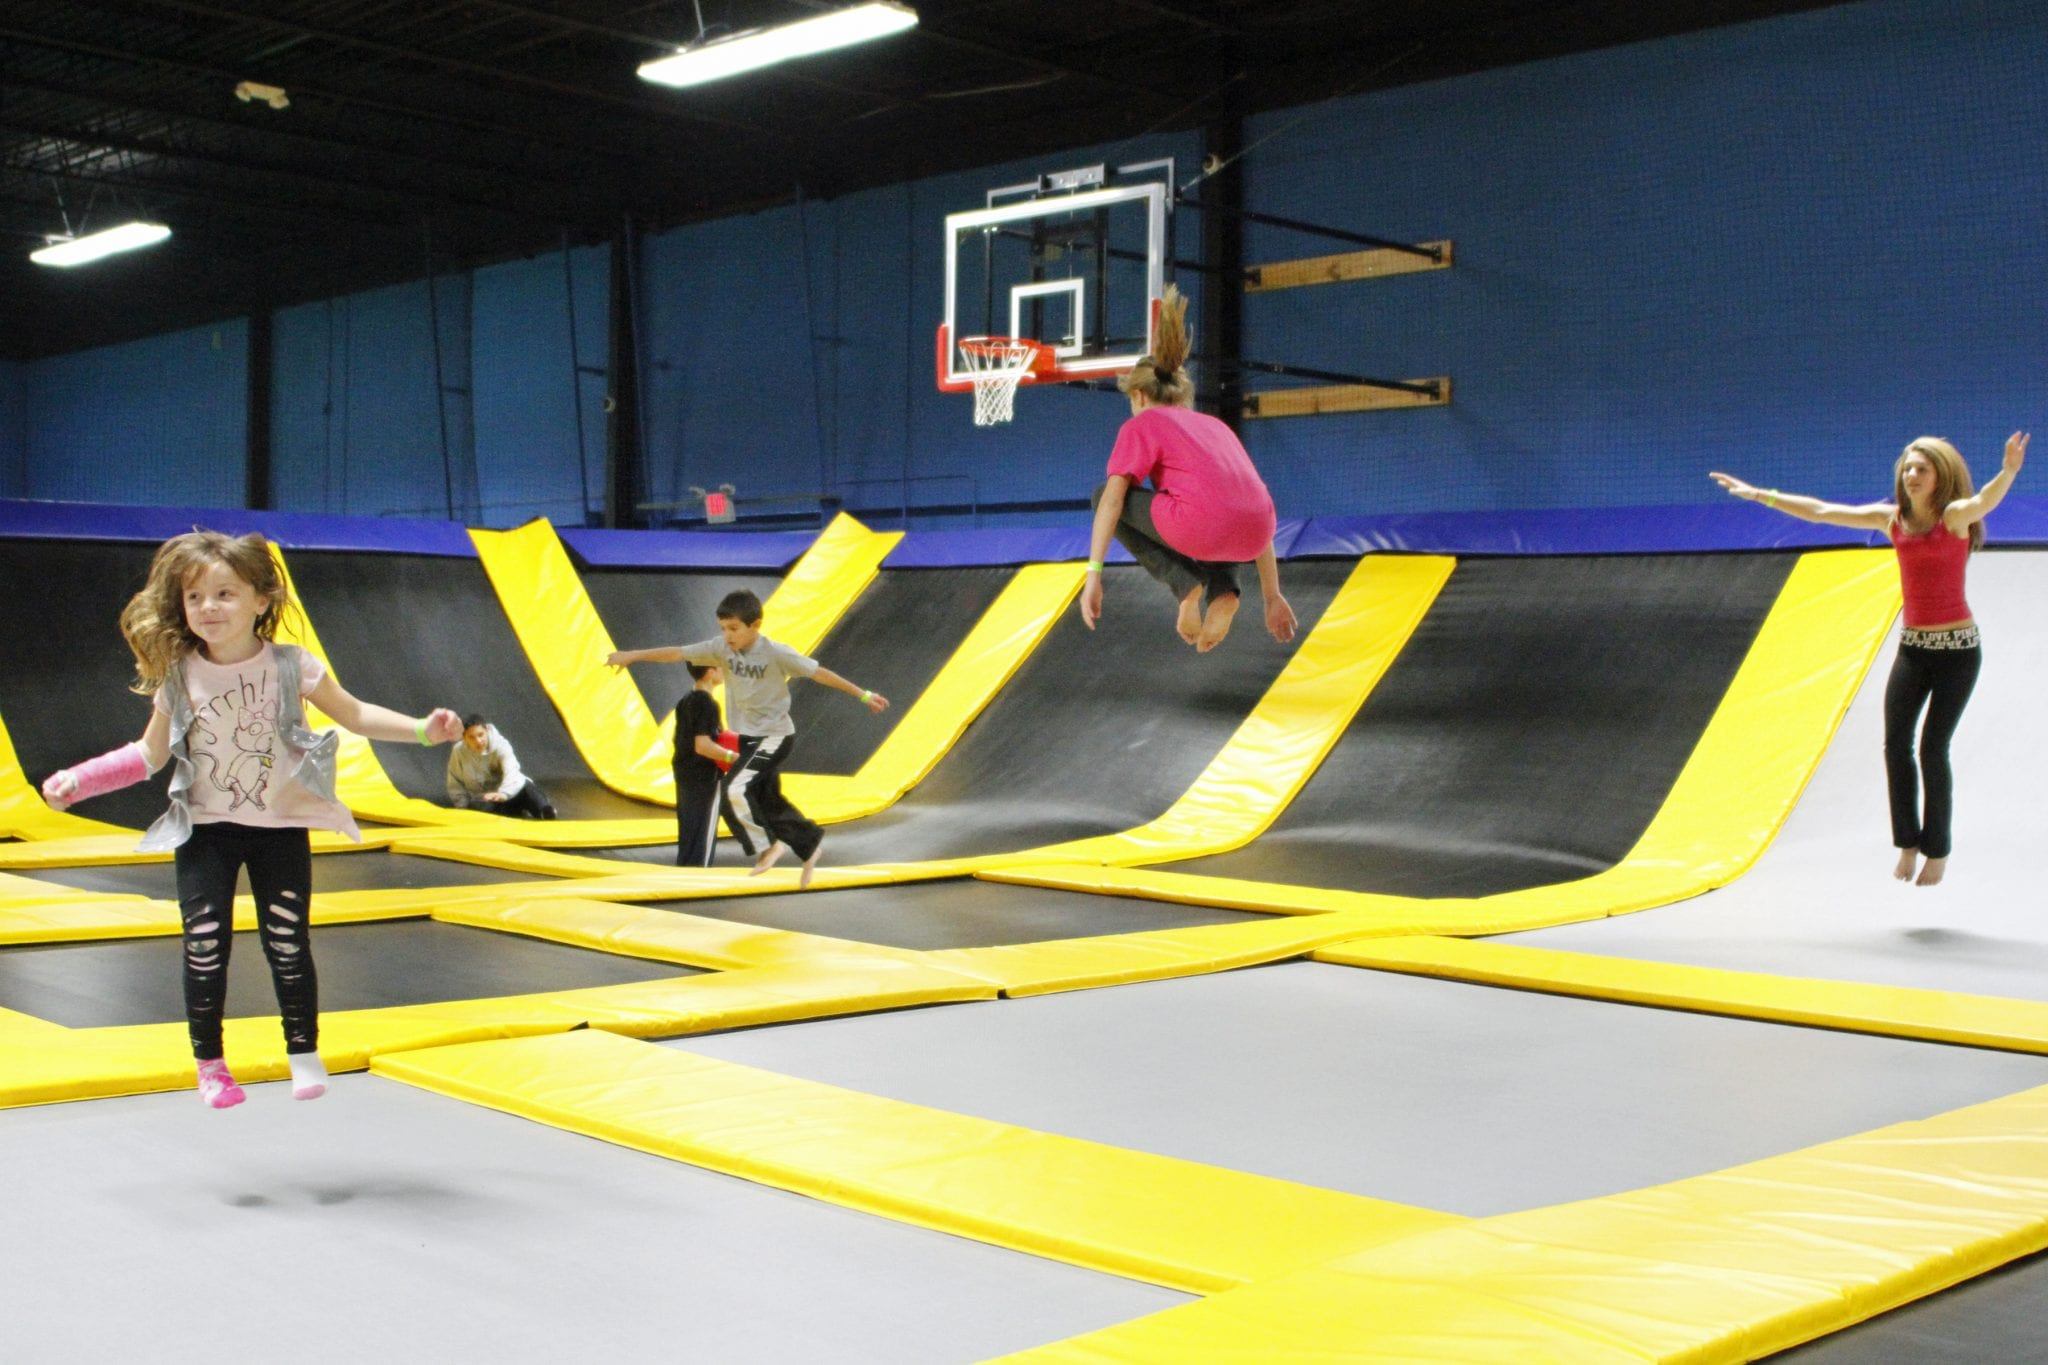 bounce-trampoline-sports-teambuilding-explorewesternmass.com